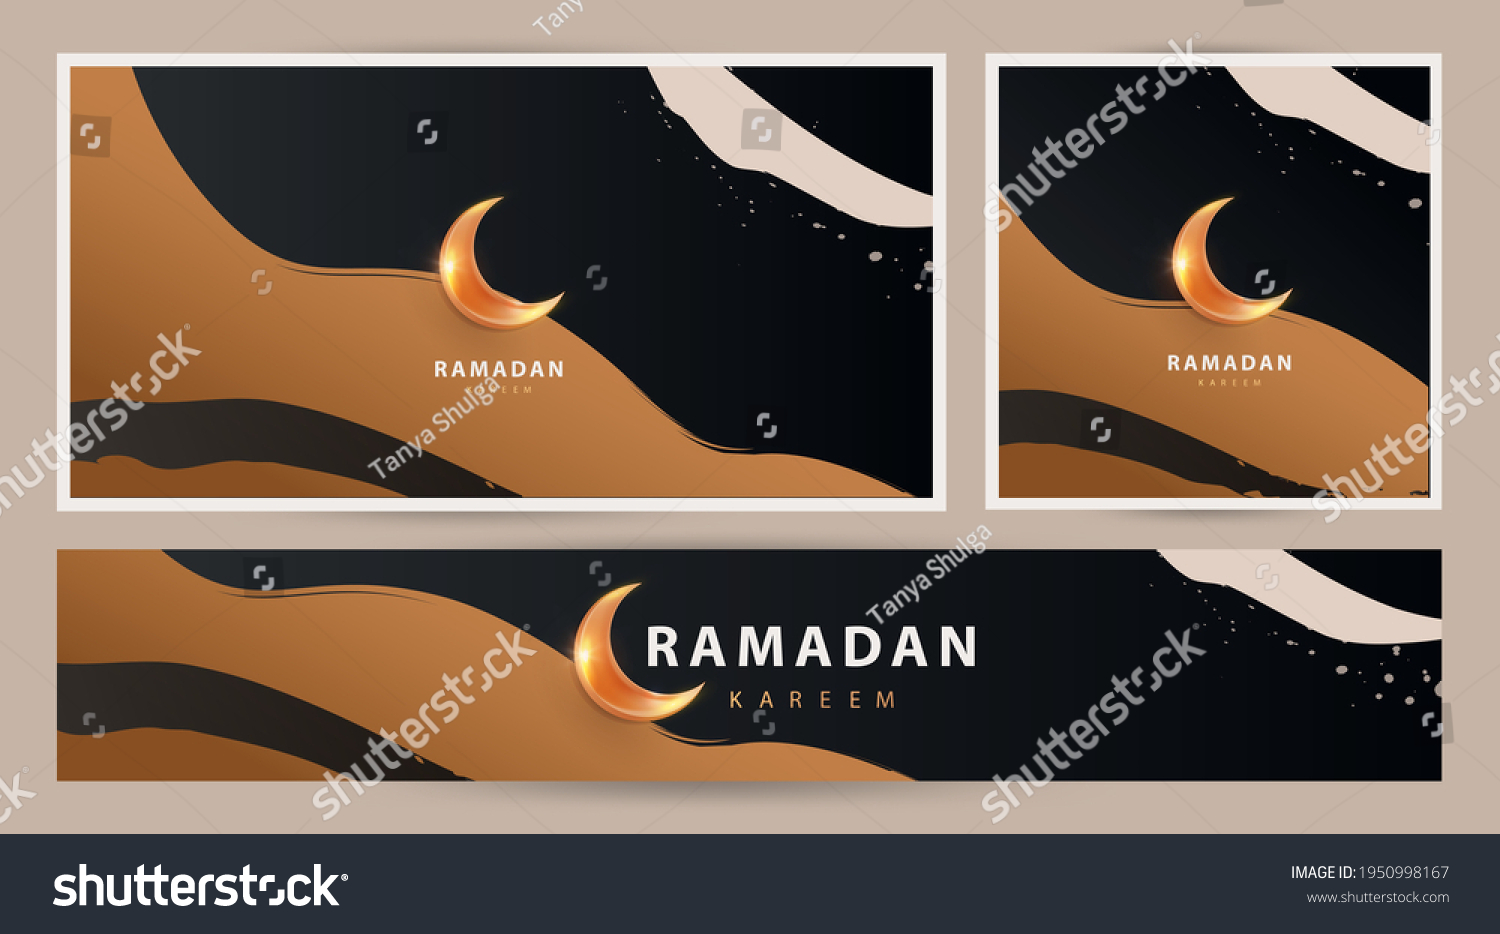 Ramadan Kareem modern luxury design Set in modern art style. Abstract art hand drawn  background with golden sand dunes and shining moon against the night sky. Poster, cover, card, header for website #1950998167